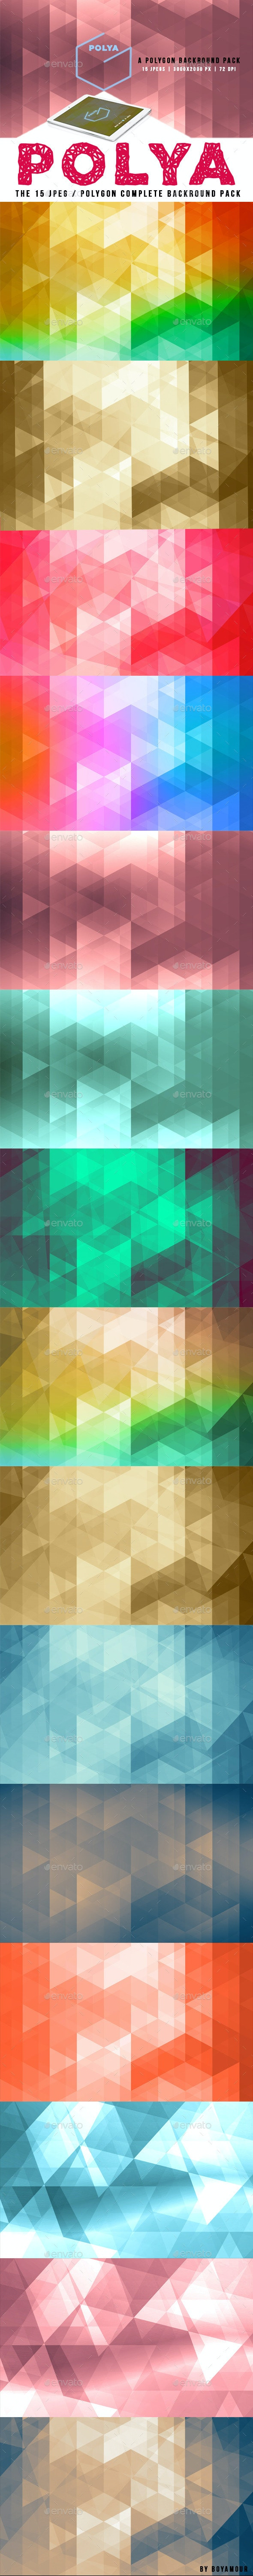 Polya Background Pack - Abstract Backgrounds